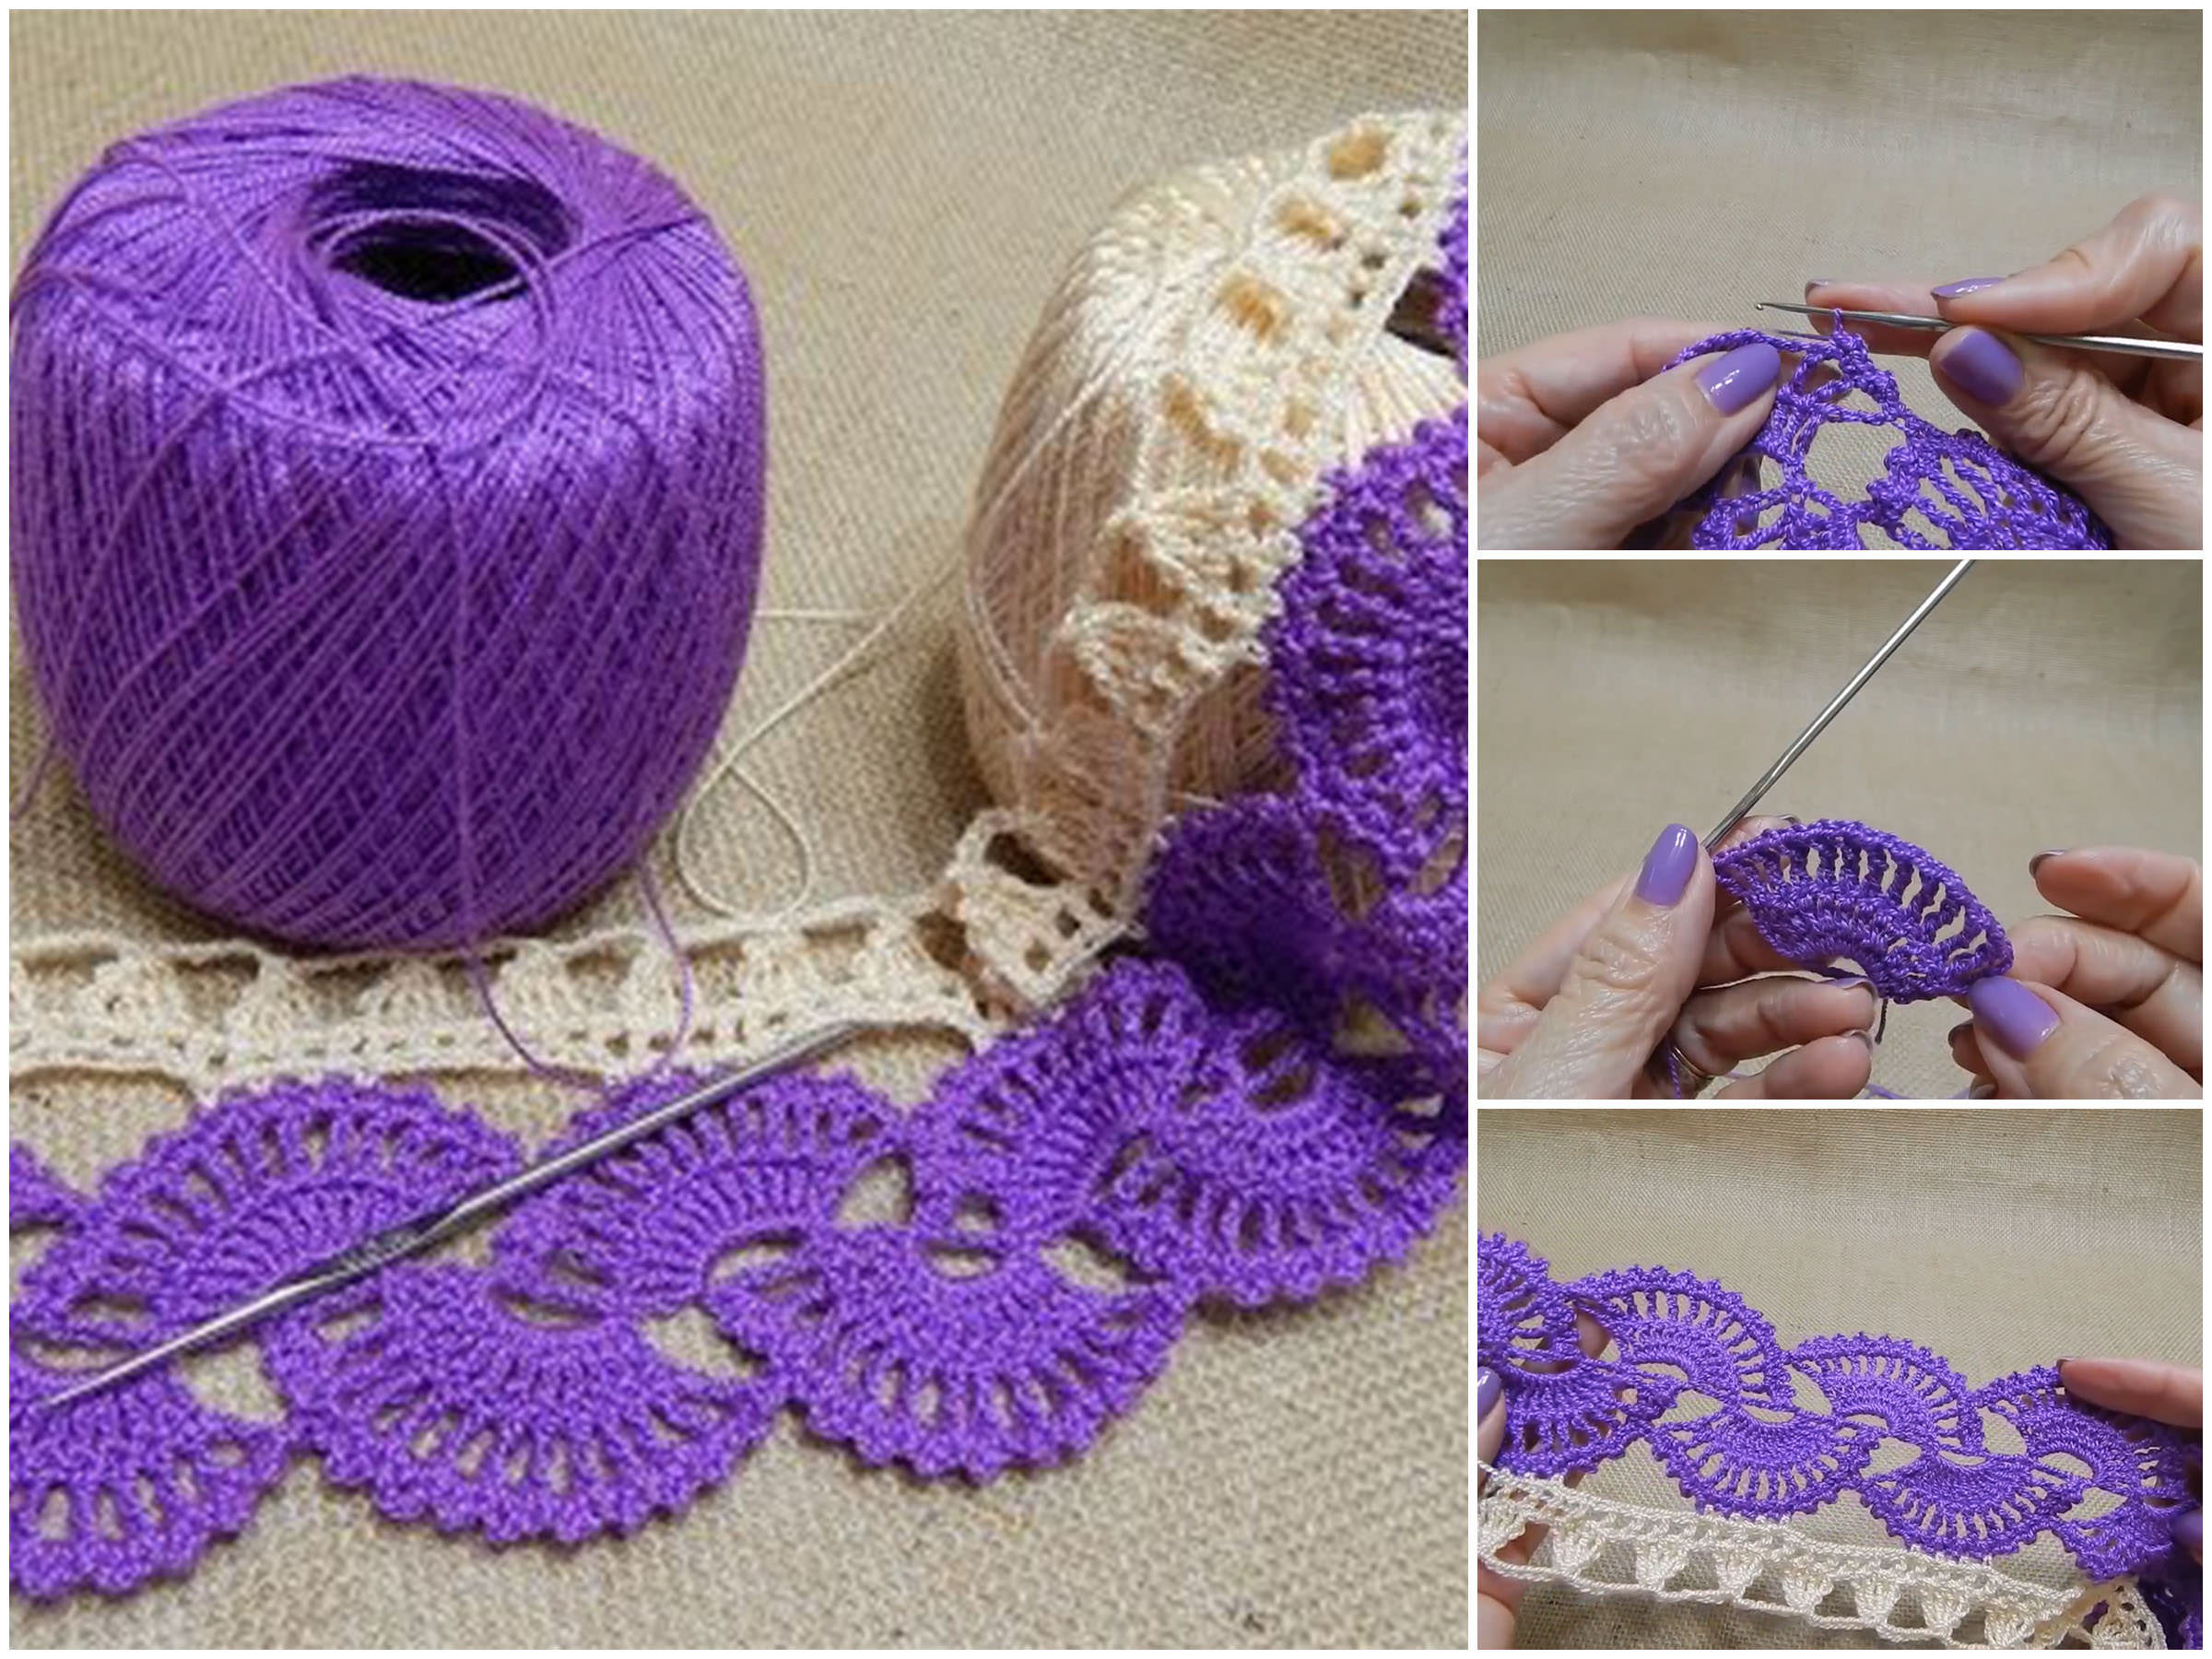 There are many crochet lace patterns, but this is one of my favorite ...